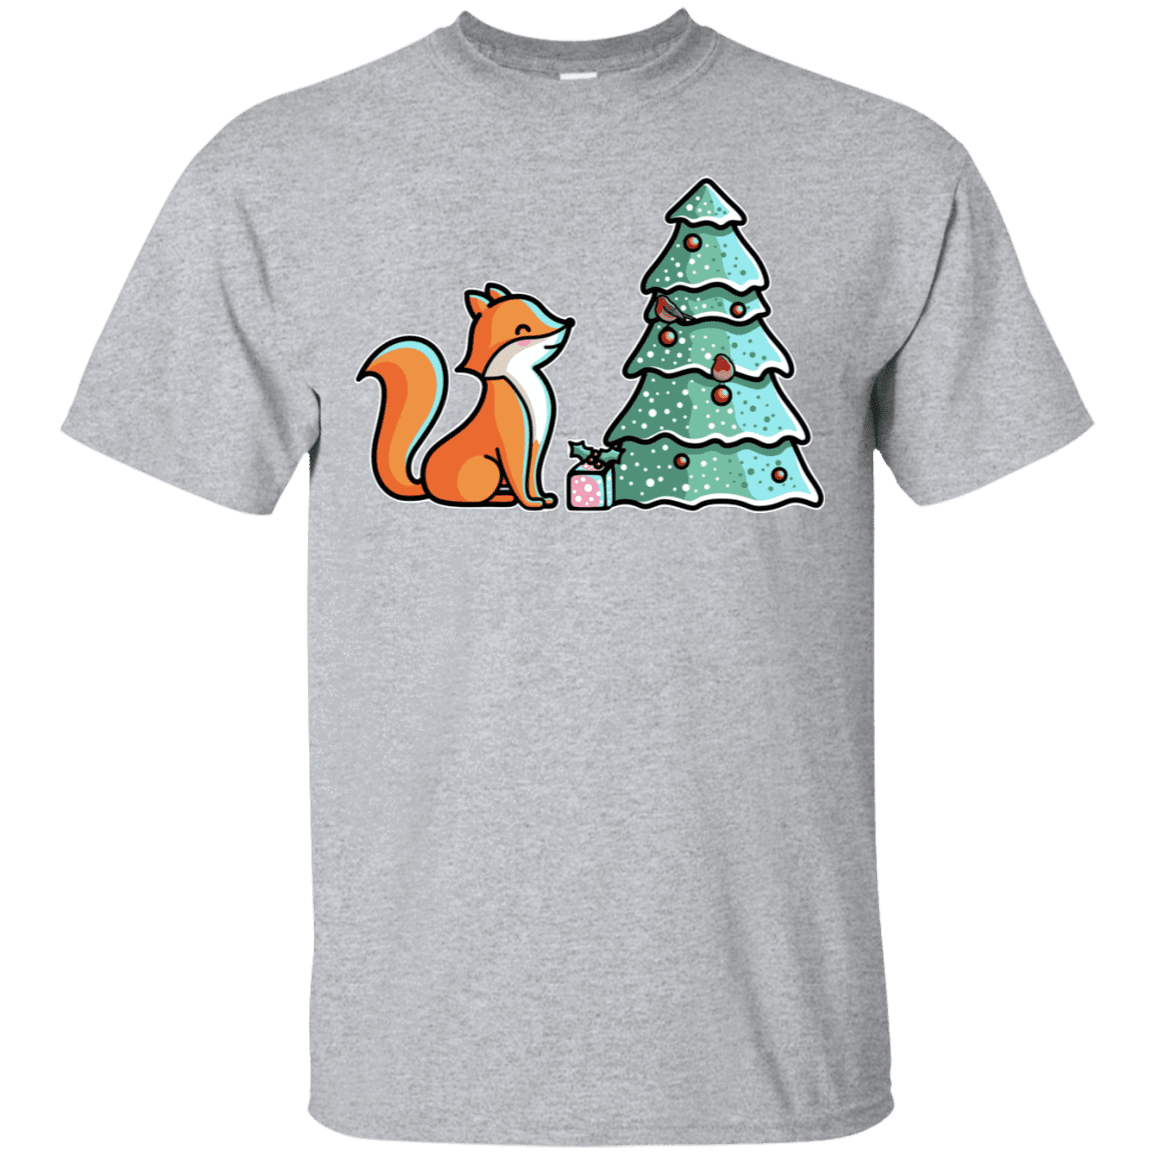 T-Shirts Sport Grey / S Kawaii Cute Christmas Fox T-Shirt